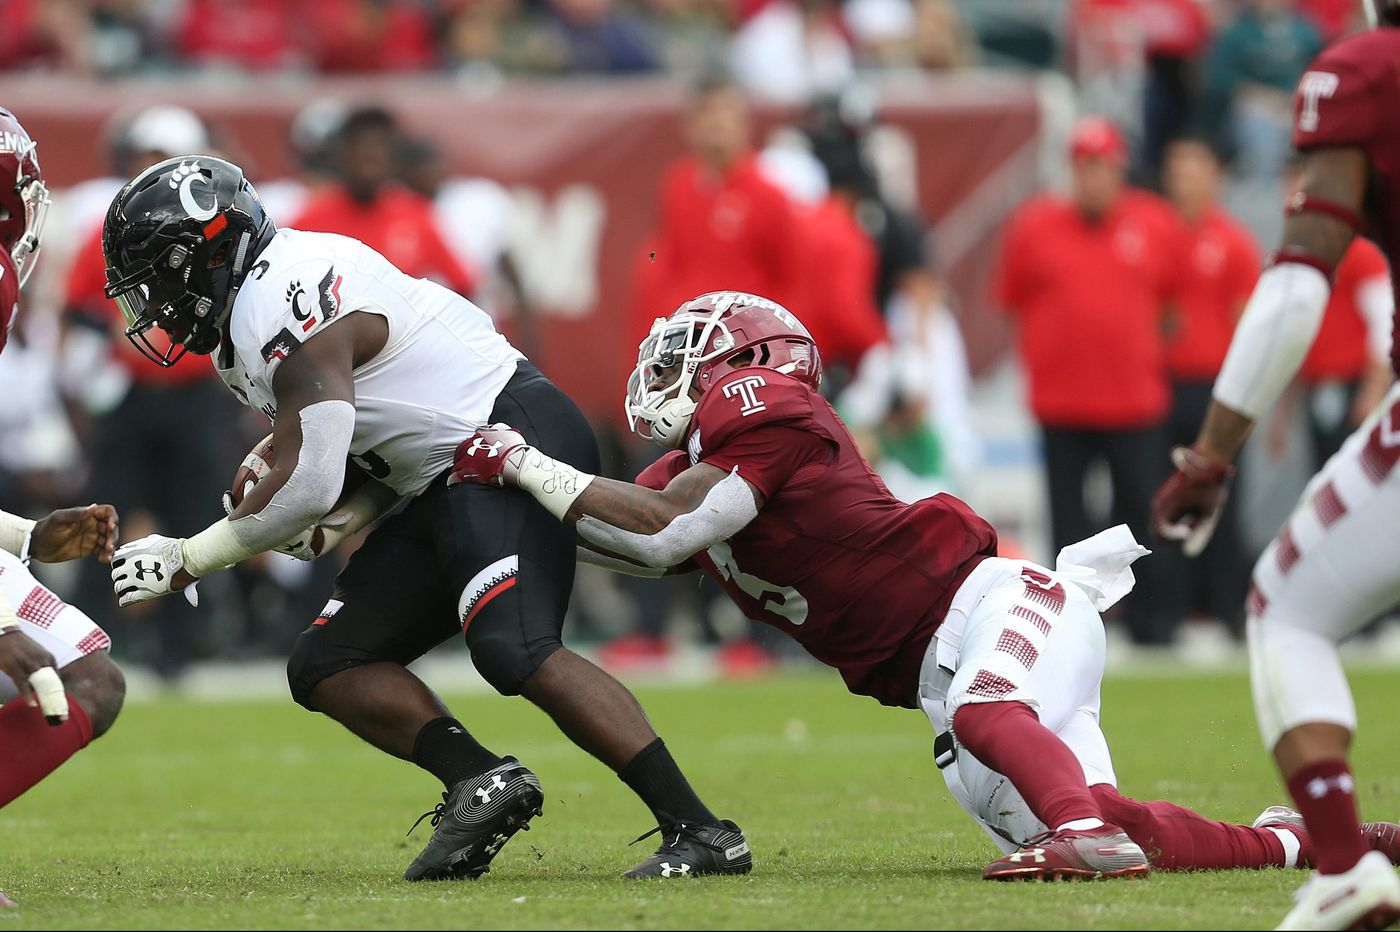 Temple's Chapelle Russell has returned from second ACL tear to have strong season